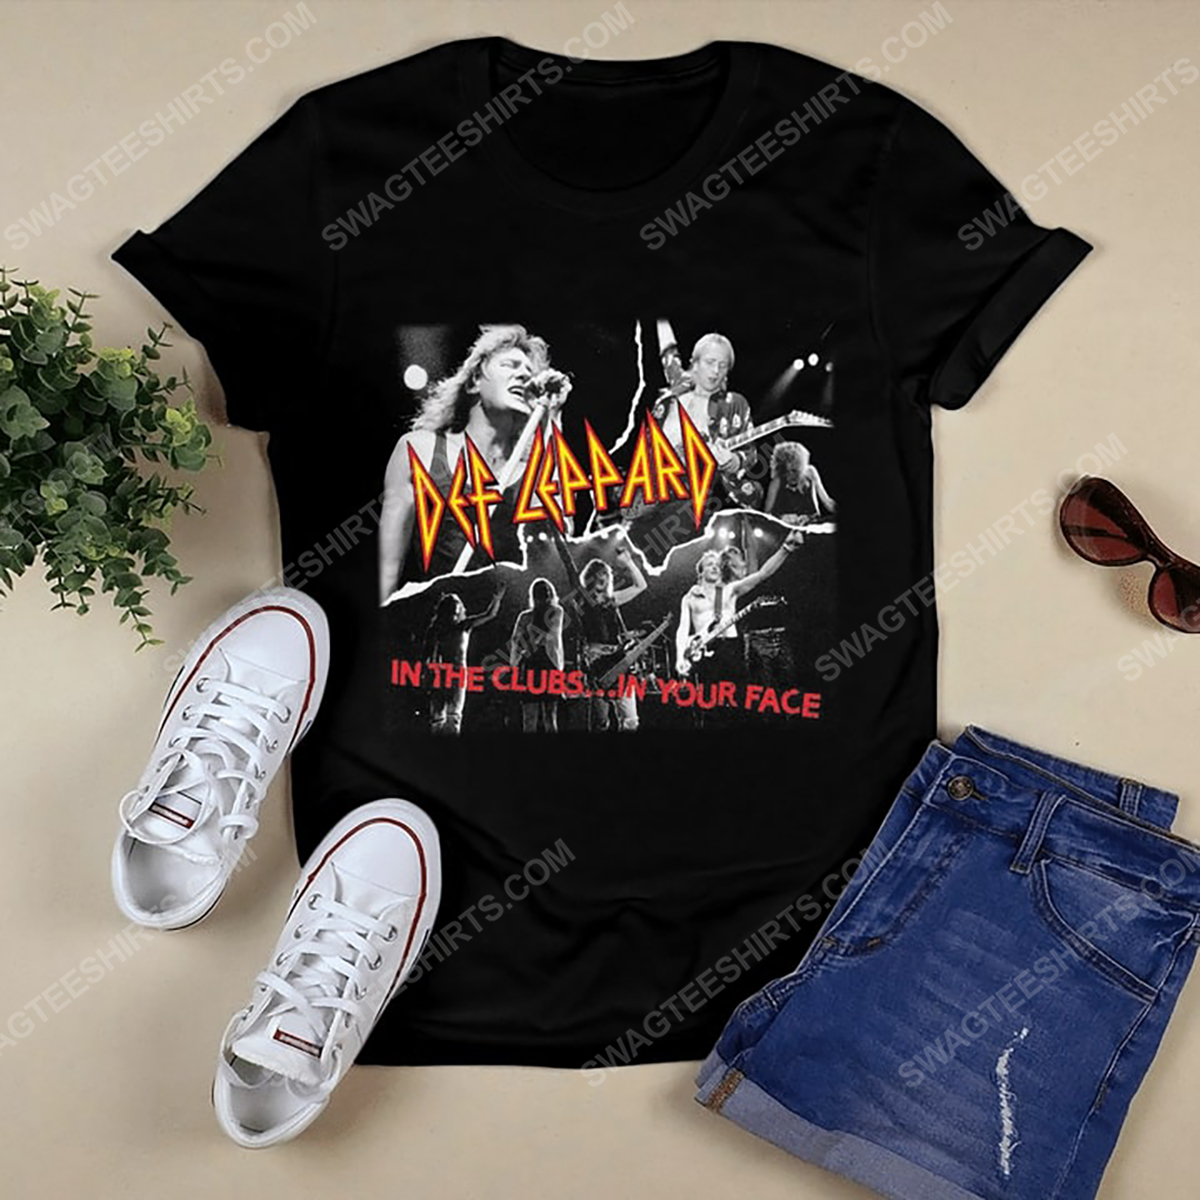 Def leppard in the clubs in your face vintage shirt 2(1)